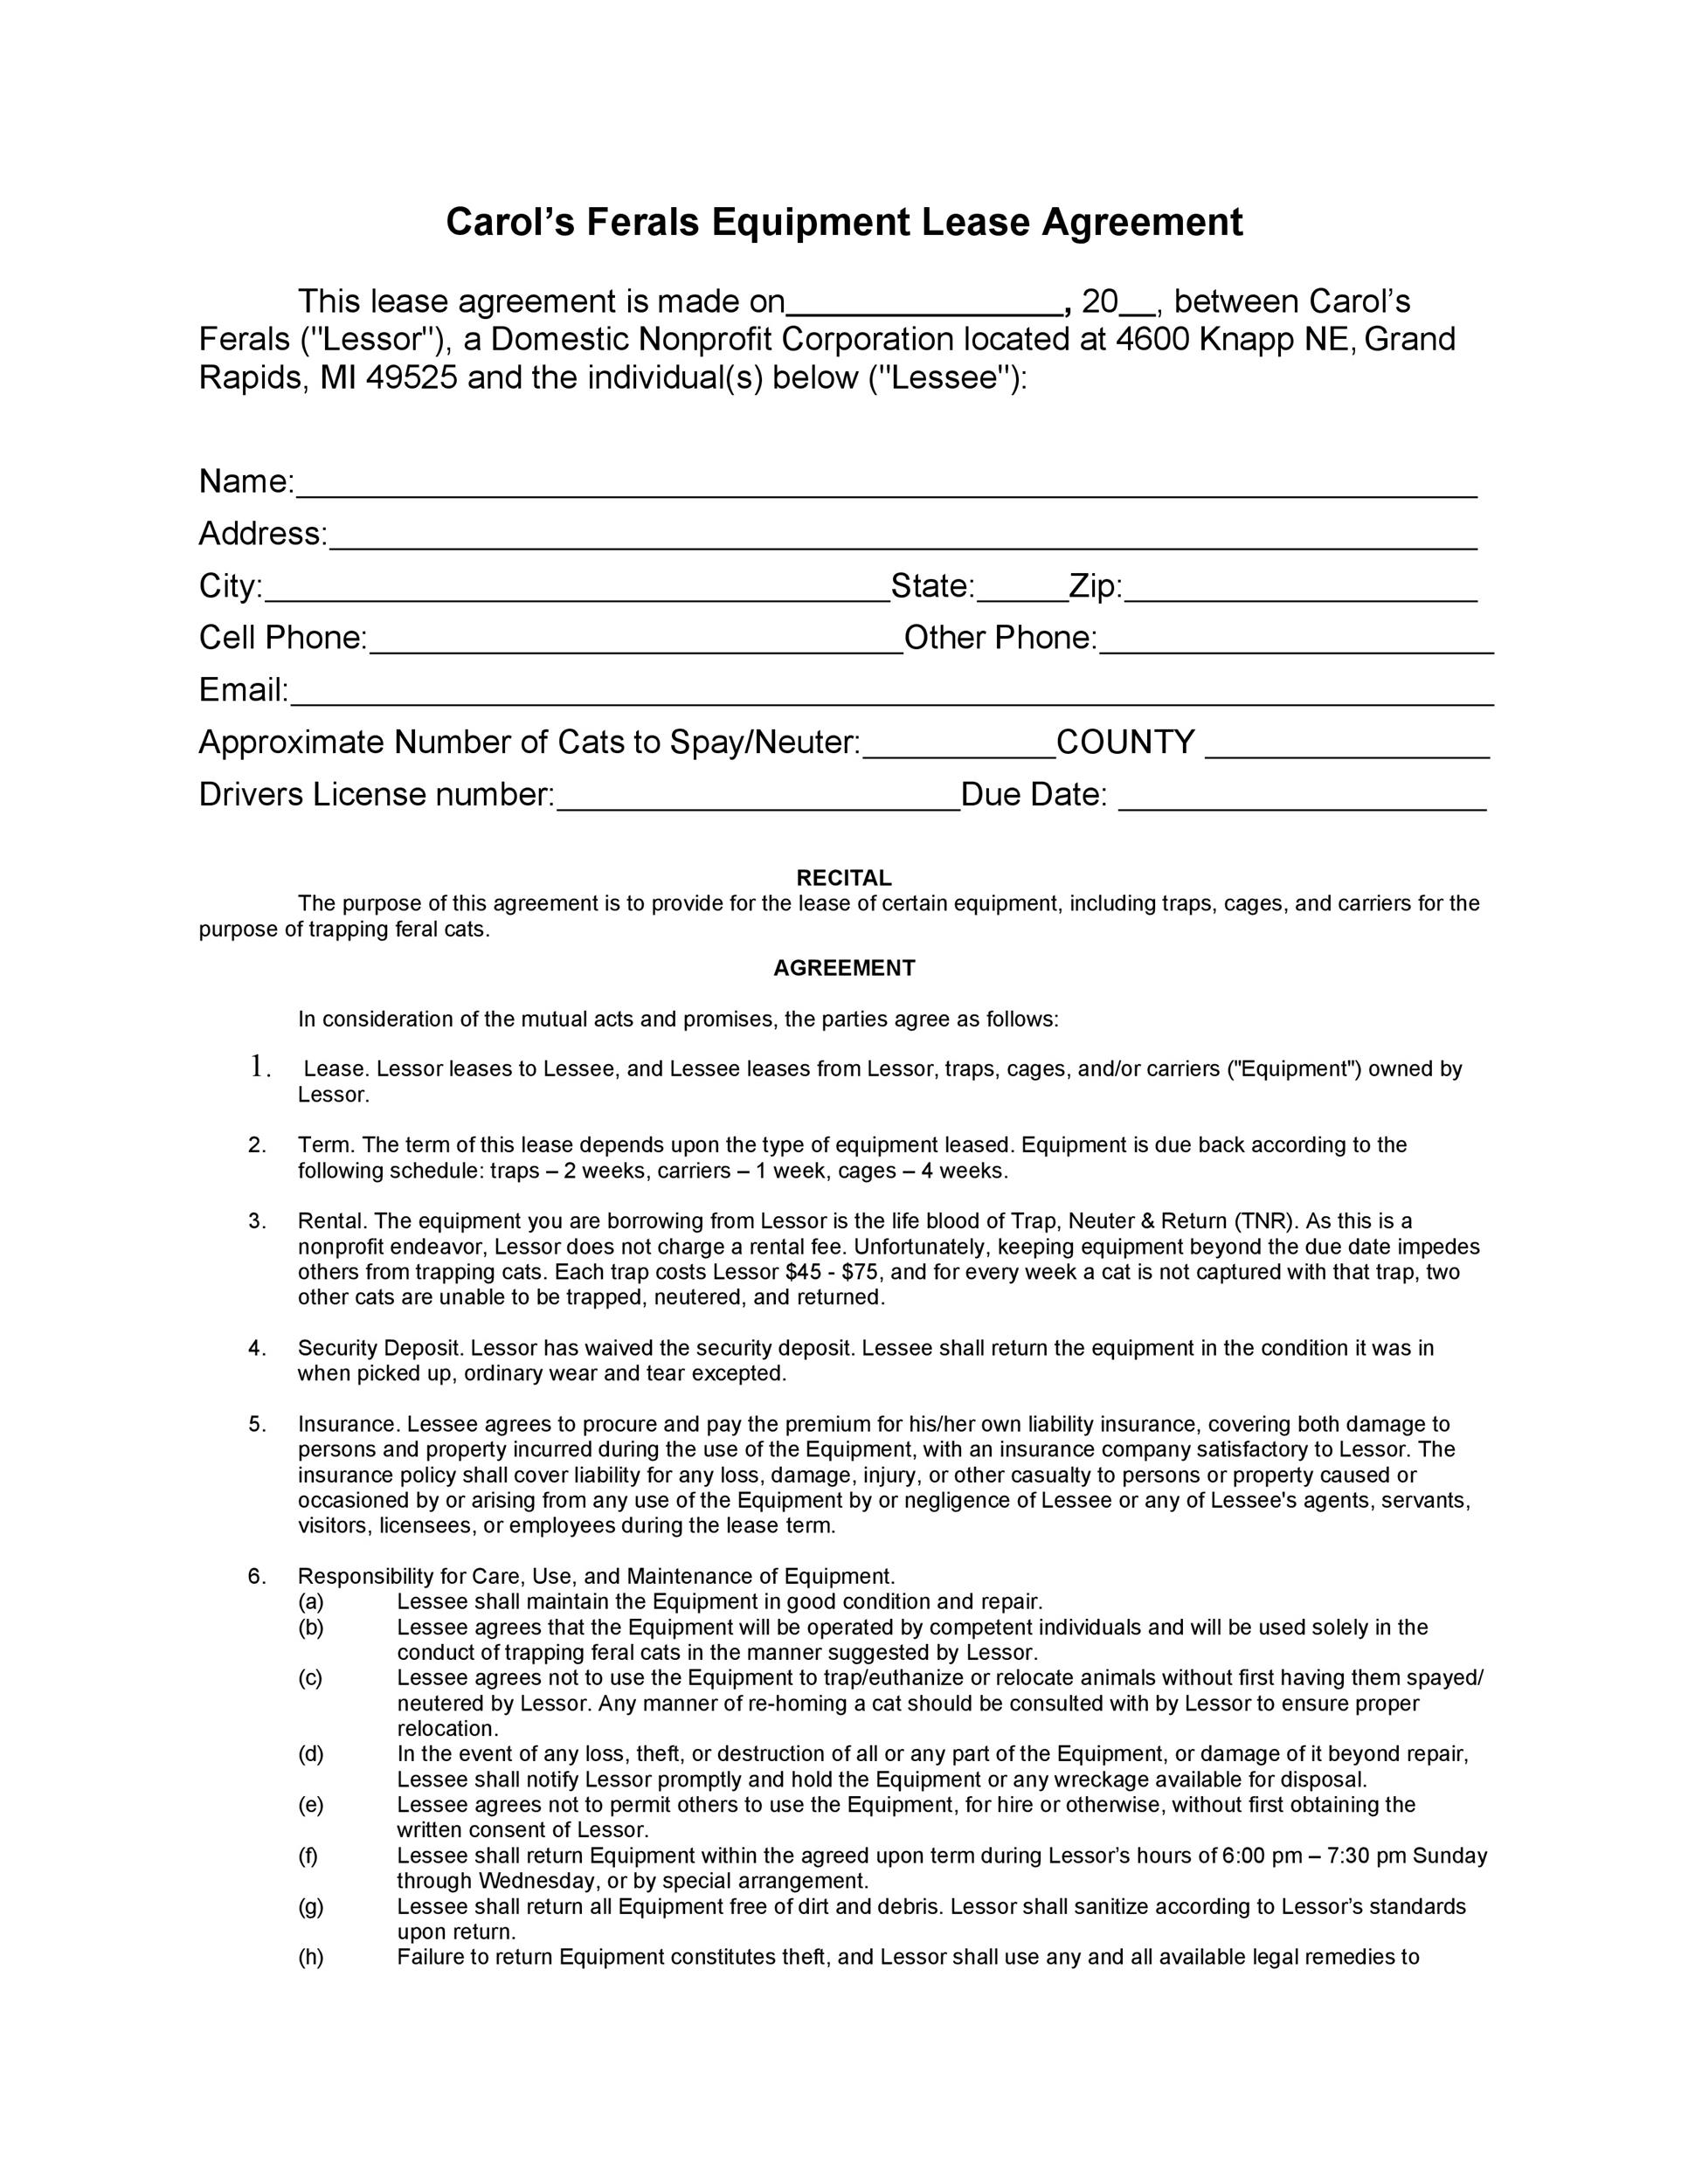 Free equipment lease agreement 12